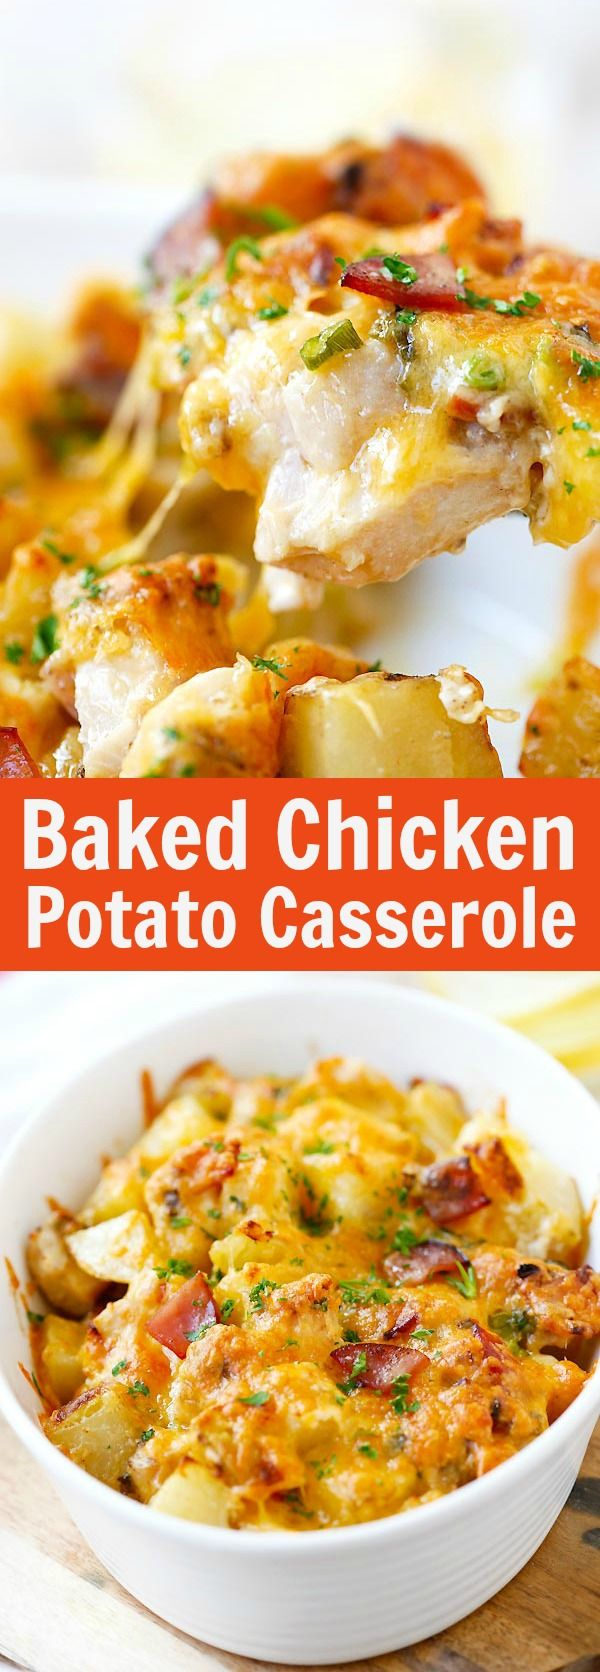 Baked Chicken and Potato Casserole – crazy delicious chicken potato casserole loaded with cheddar cheese, bacon and cream, easy recipe for the family | http://rasamalaysia.com